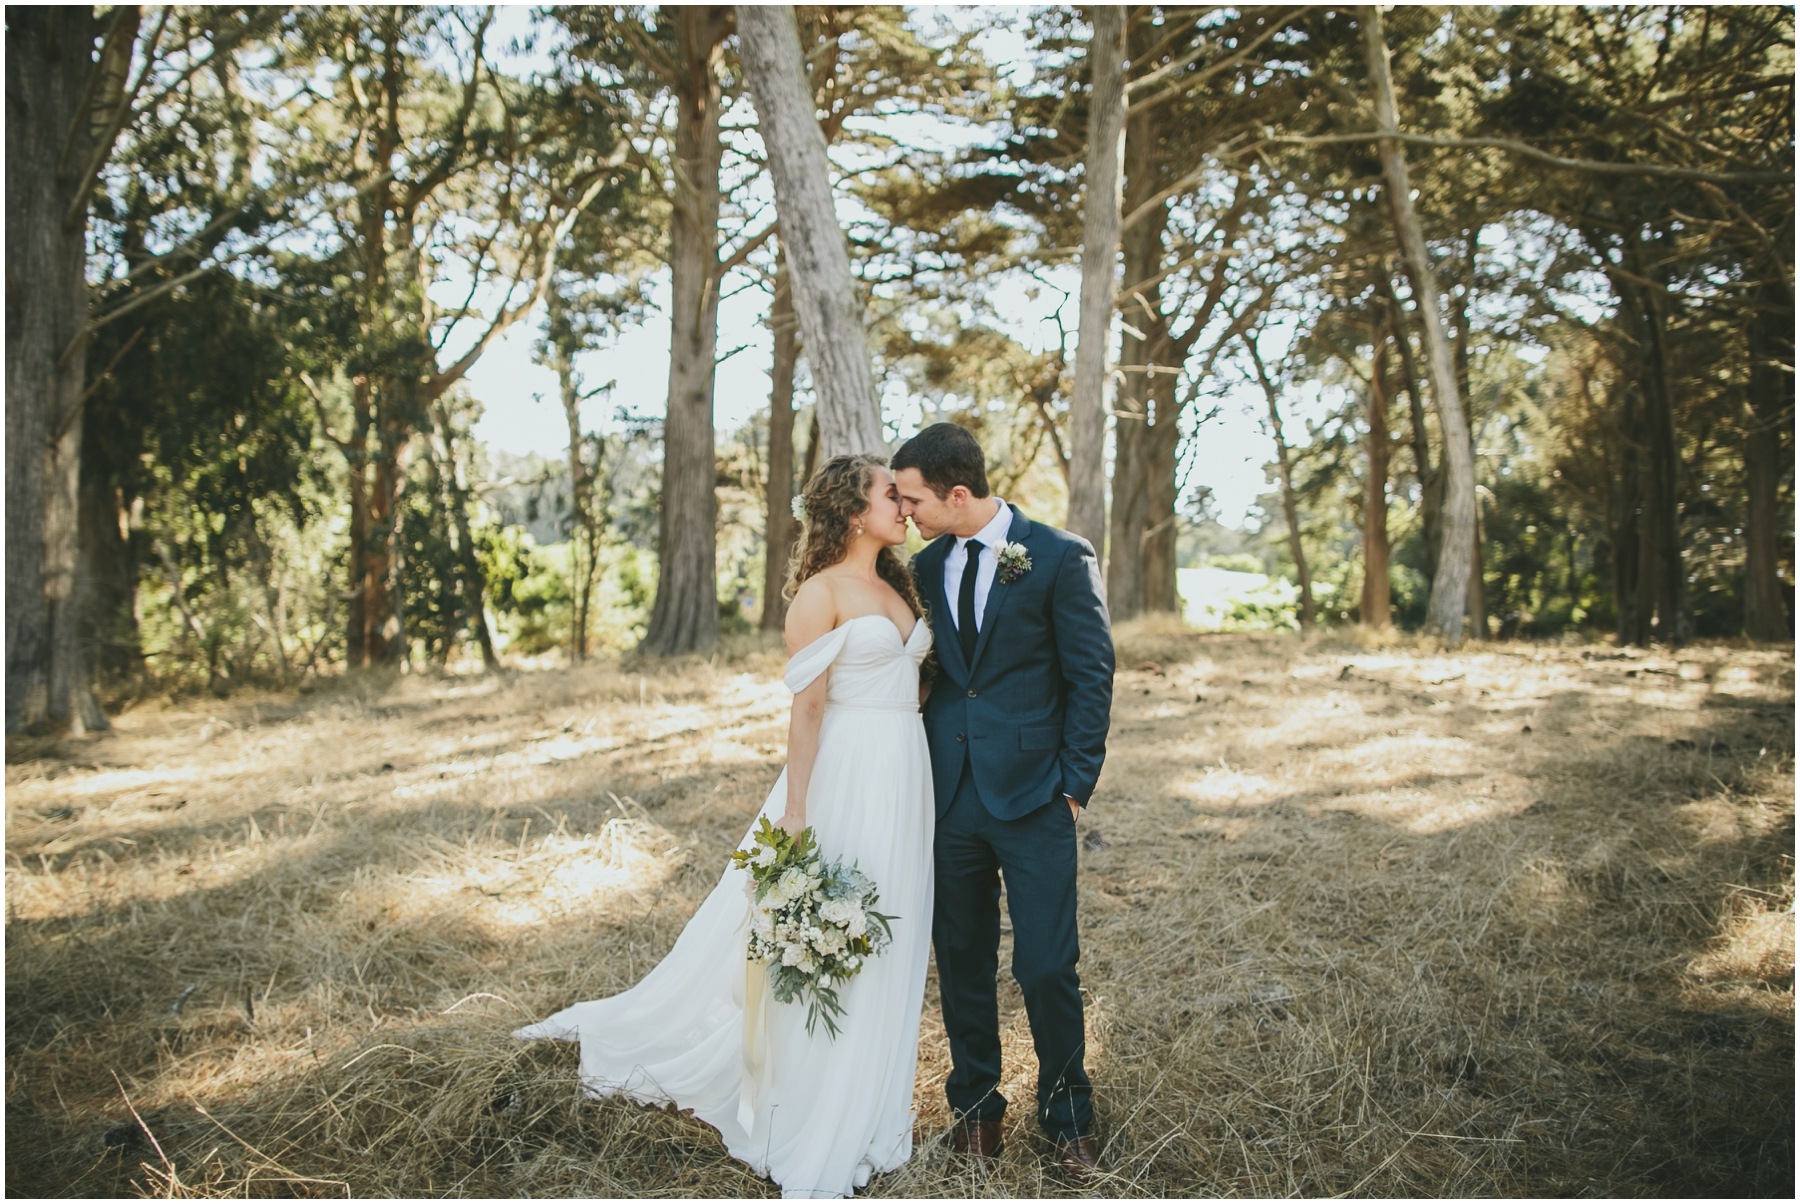 Emily+Paul-WEDDING_KellyBoitanoPhotography_0001